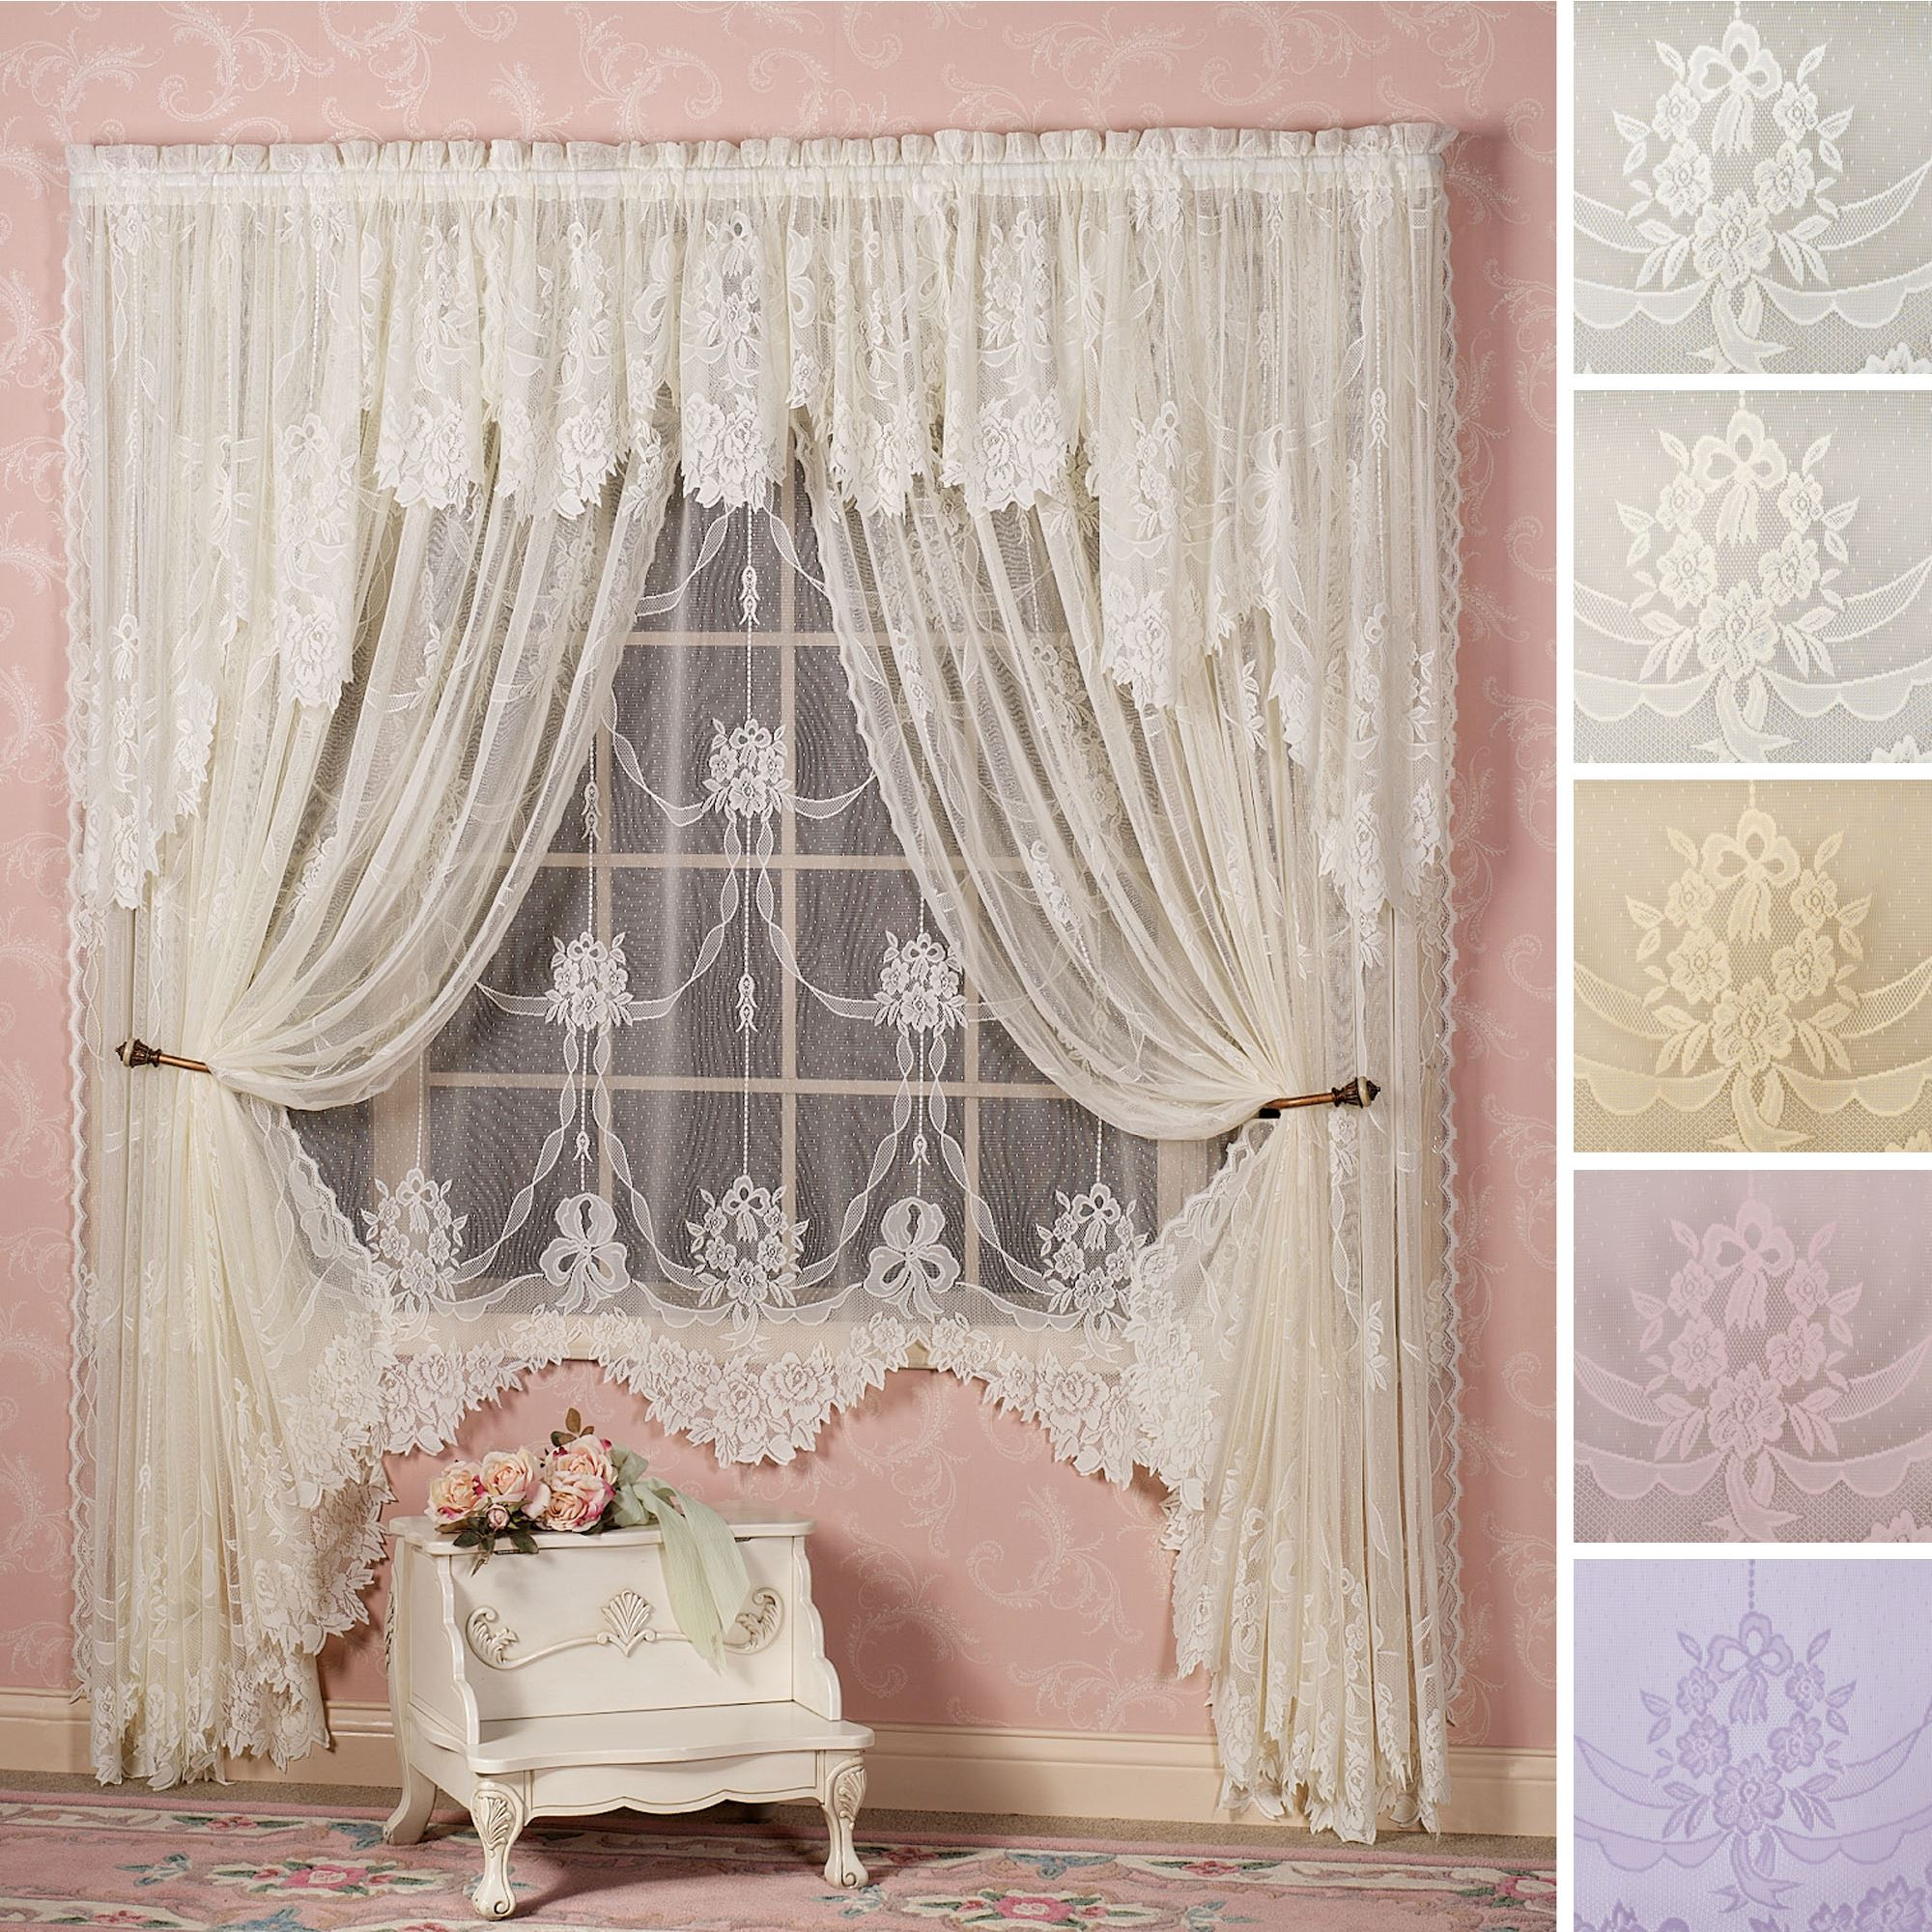 size how and rachel valance with nauticalvoryivoryvory ivory curtains lace design windows panels under of dollars attached stunning curtain x french shower photo full